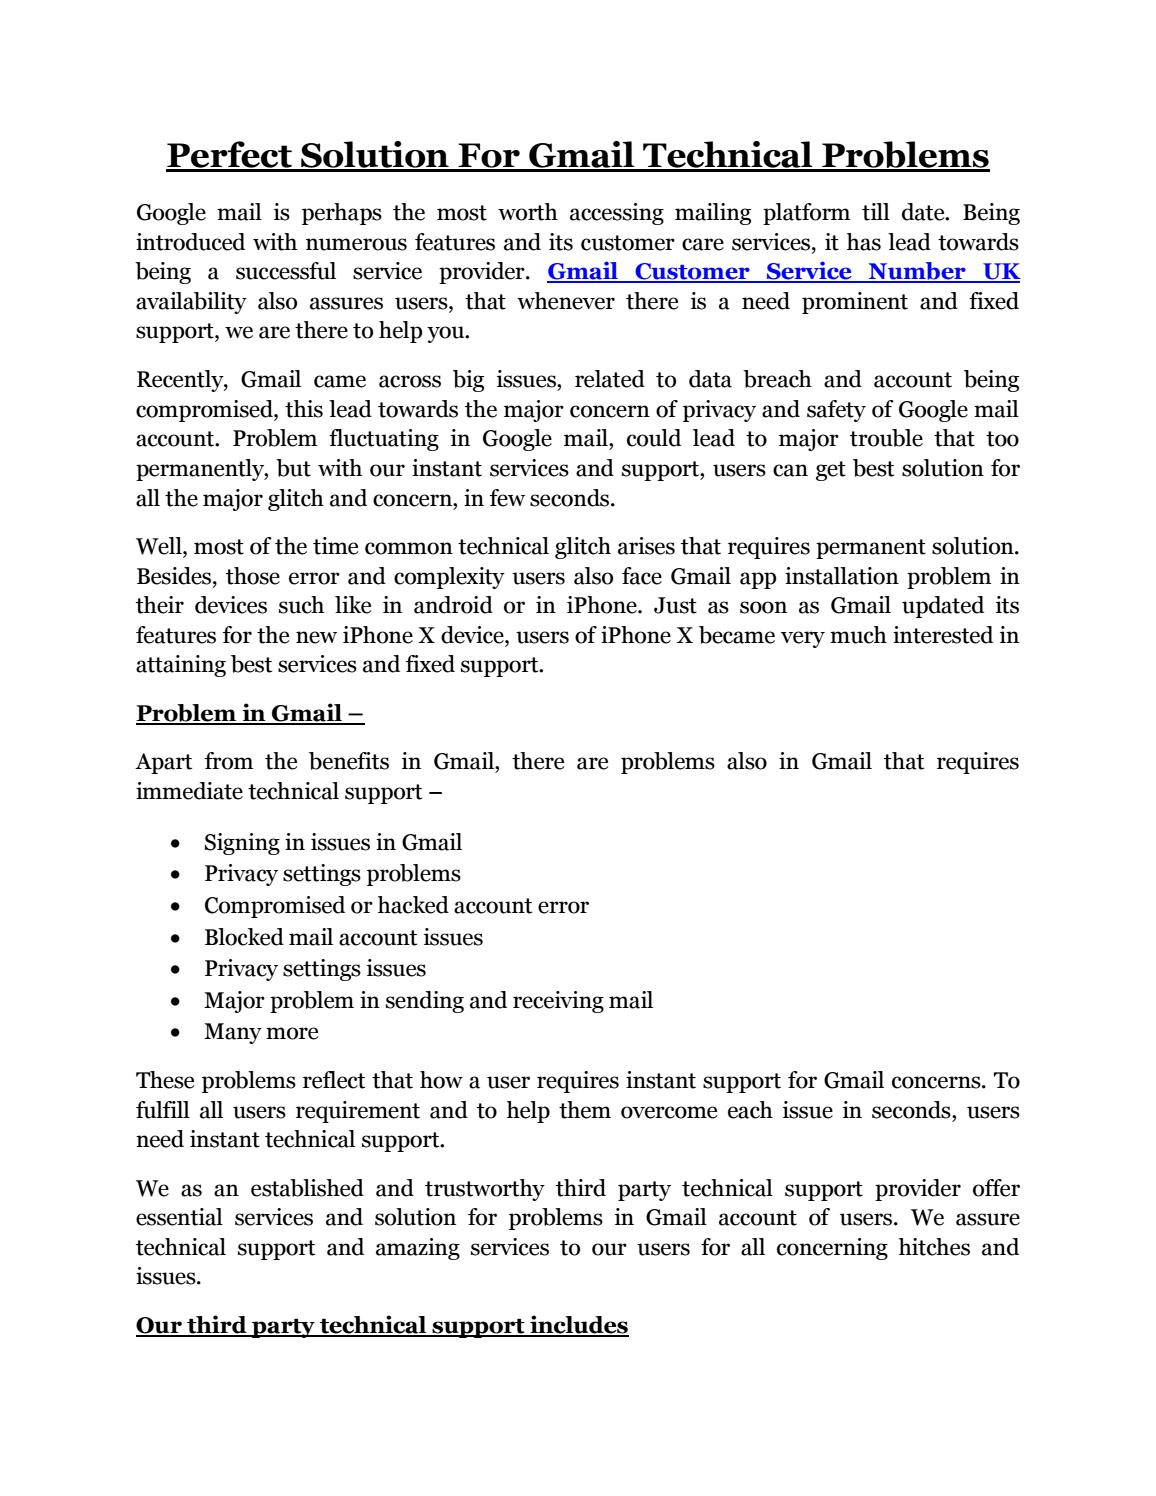 Gmail Technical Support Phone Number by abramskalty - issuu